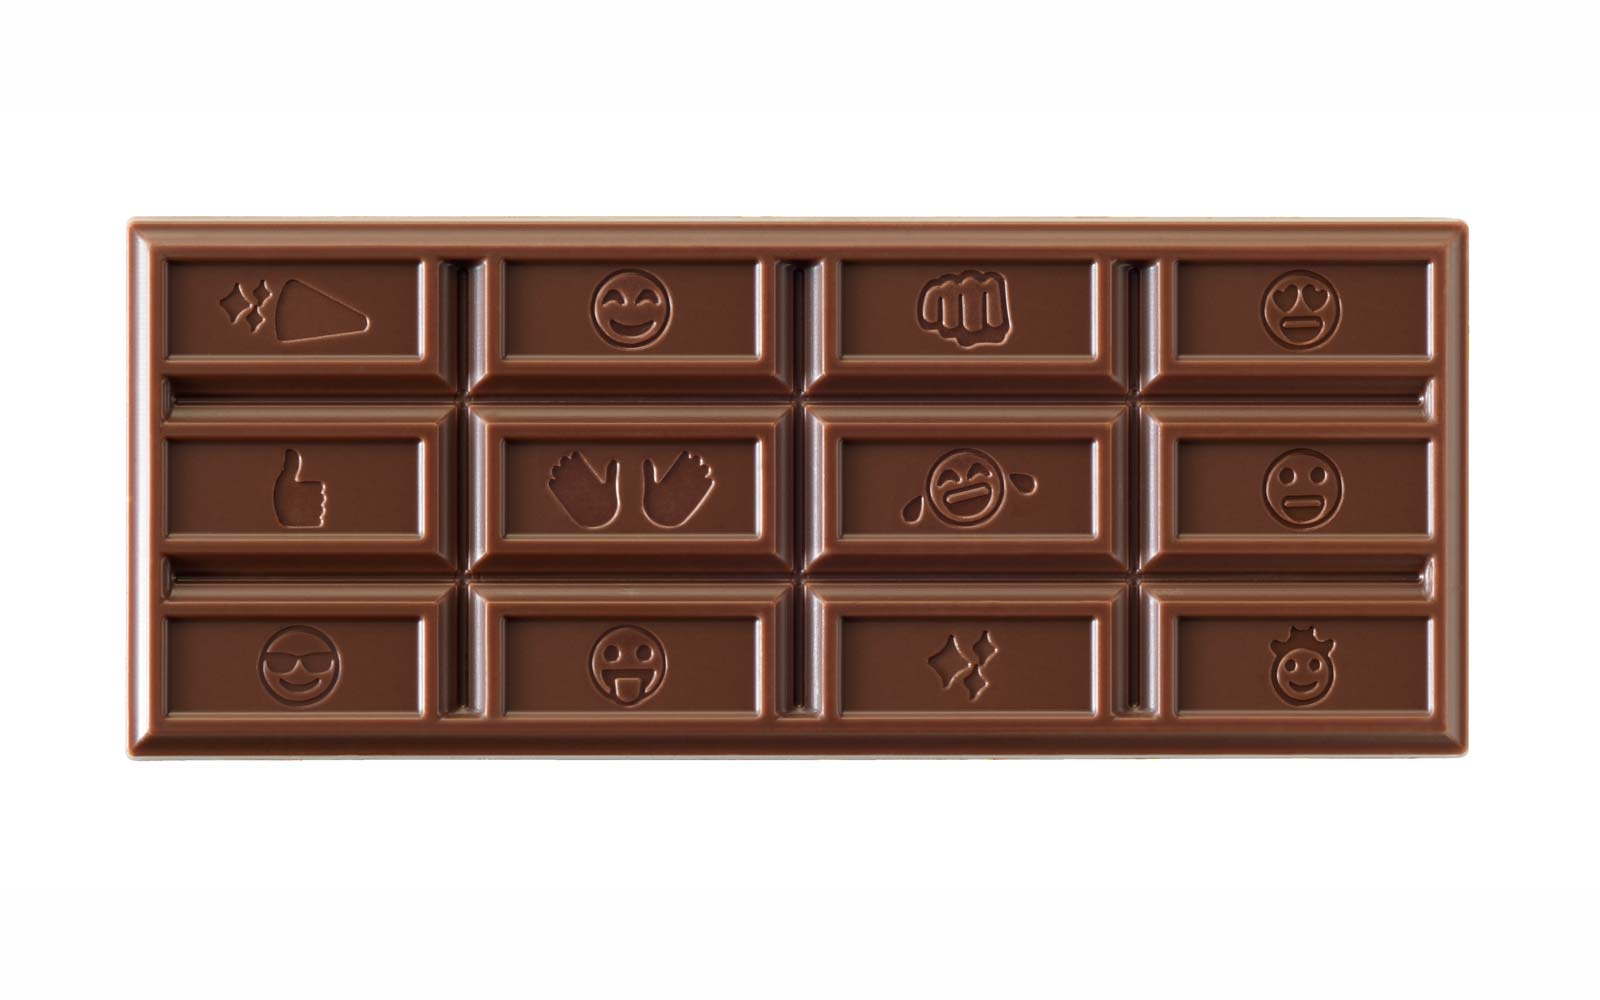 Hershey's Redesigns Its Chocolate Bar for the First Time in Over 100 Years to Include Emojis